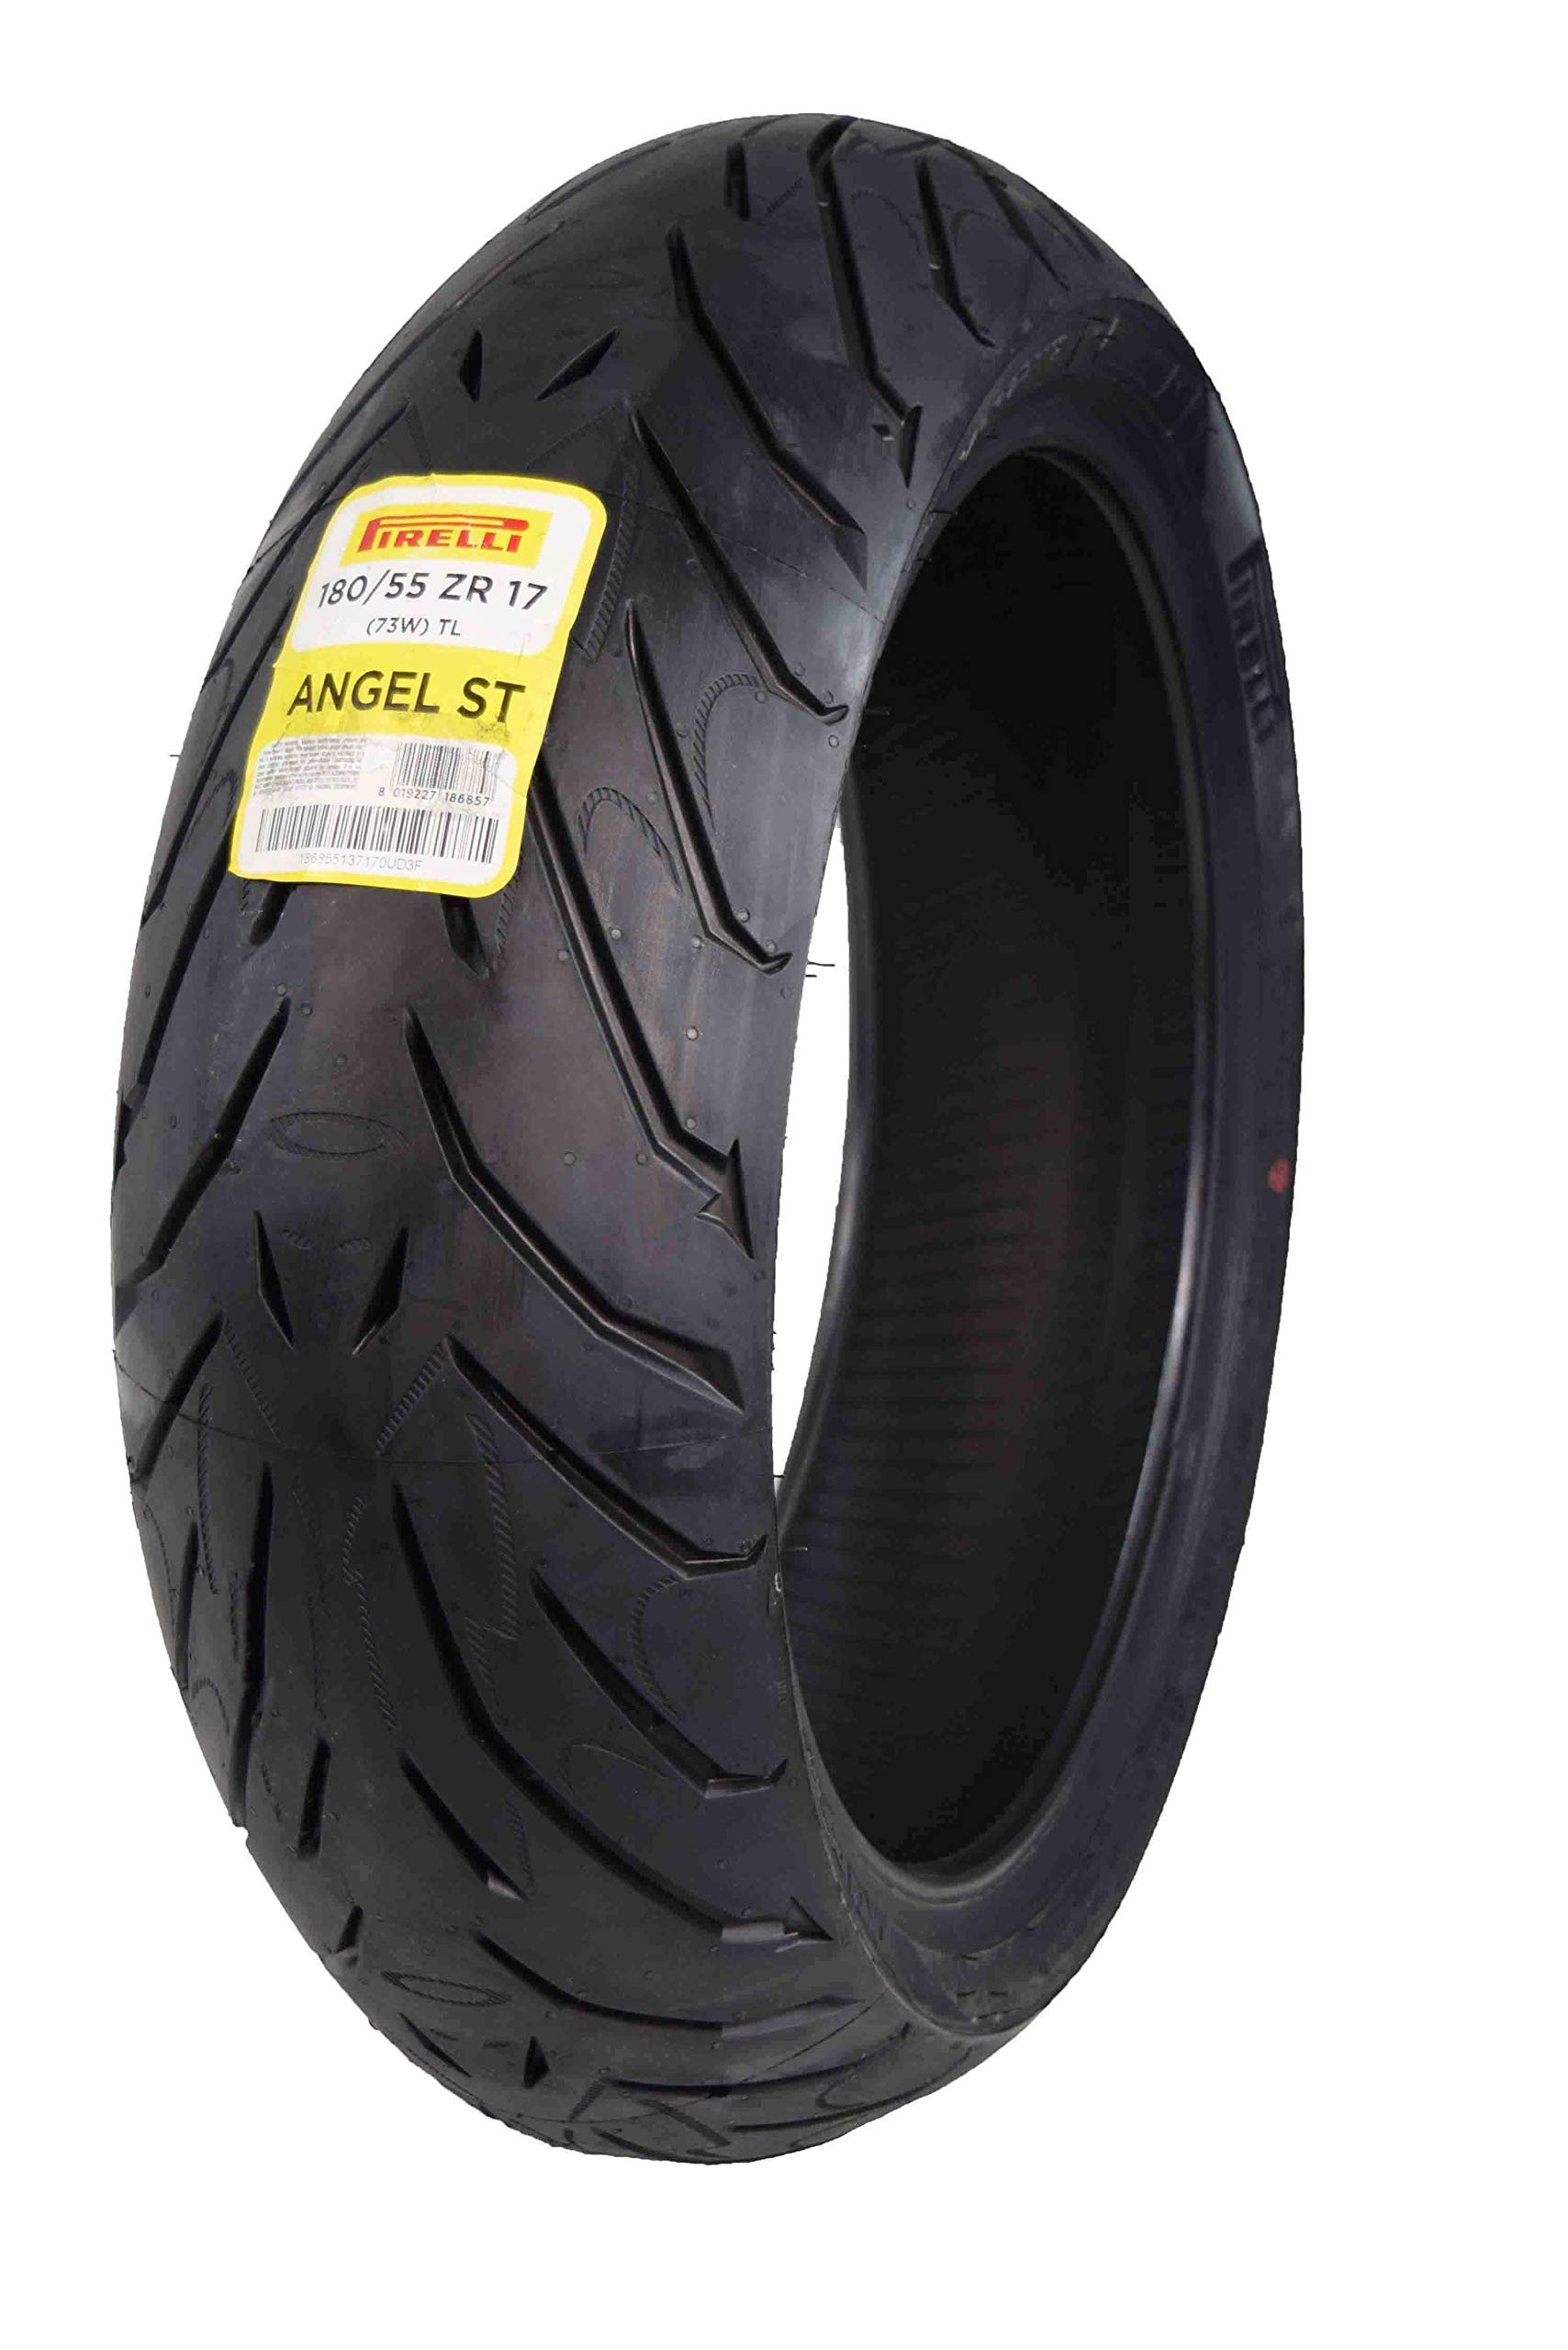 Pirelli Angel ST Rear Street Sport Touring Motorcycle Tires (1x Rear 180/55ZR17)